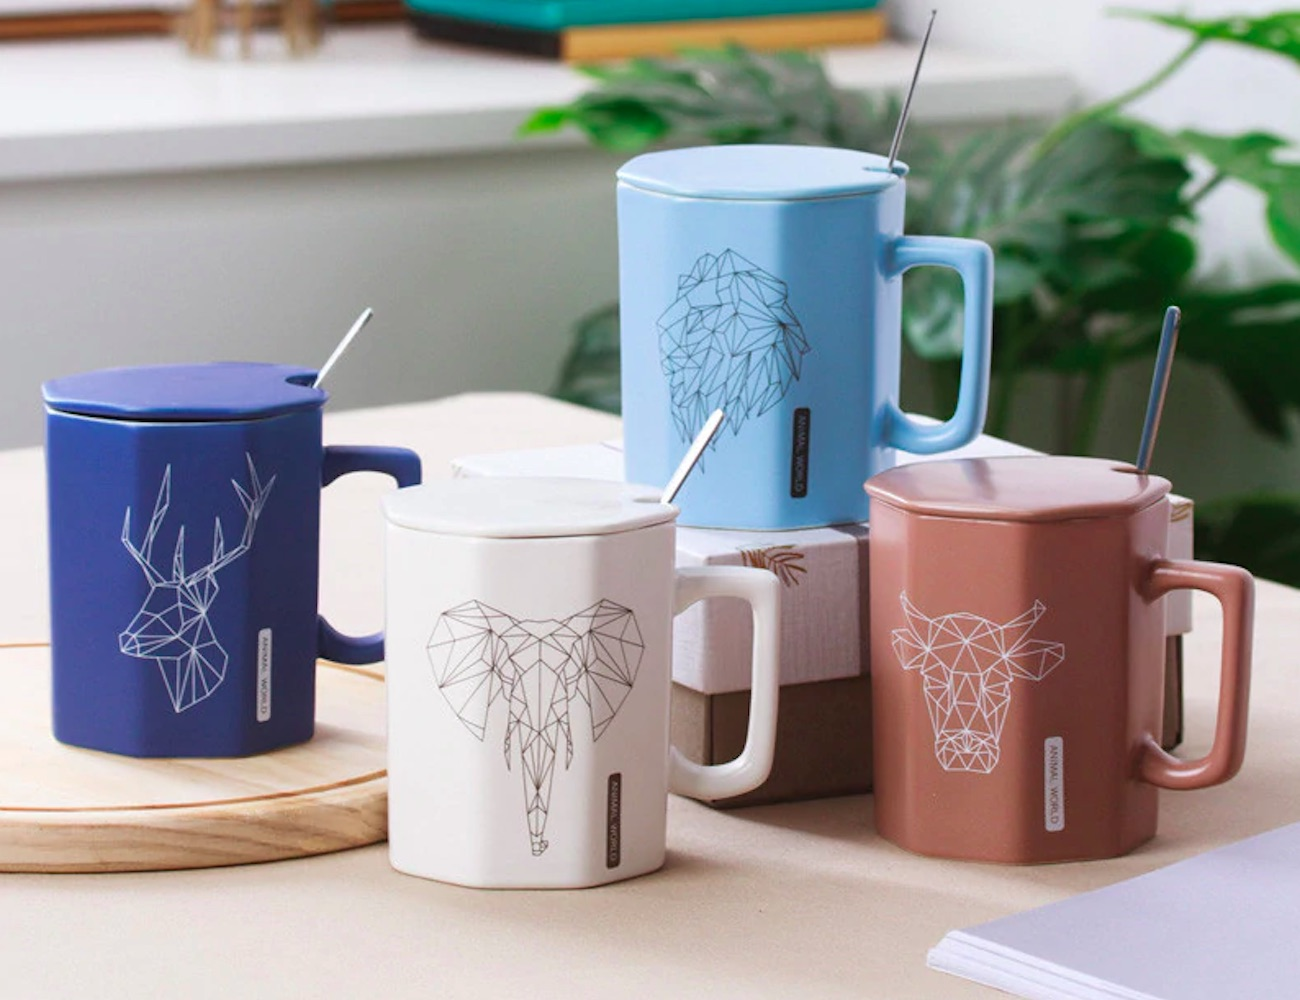 Geometric Animal All-in-One Ceramic Mug has everything you need